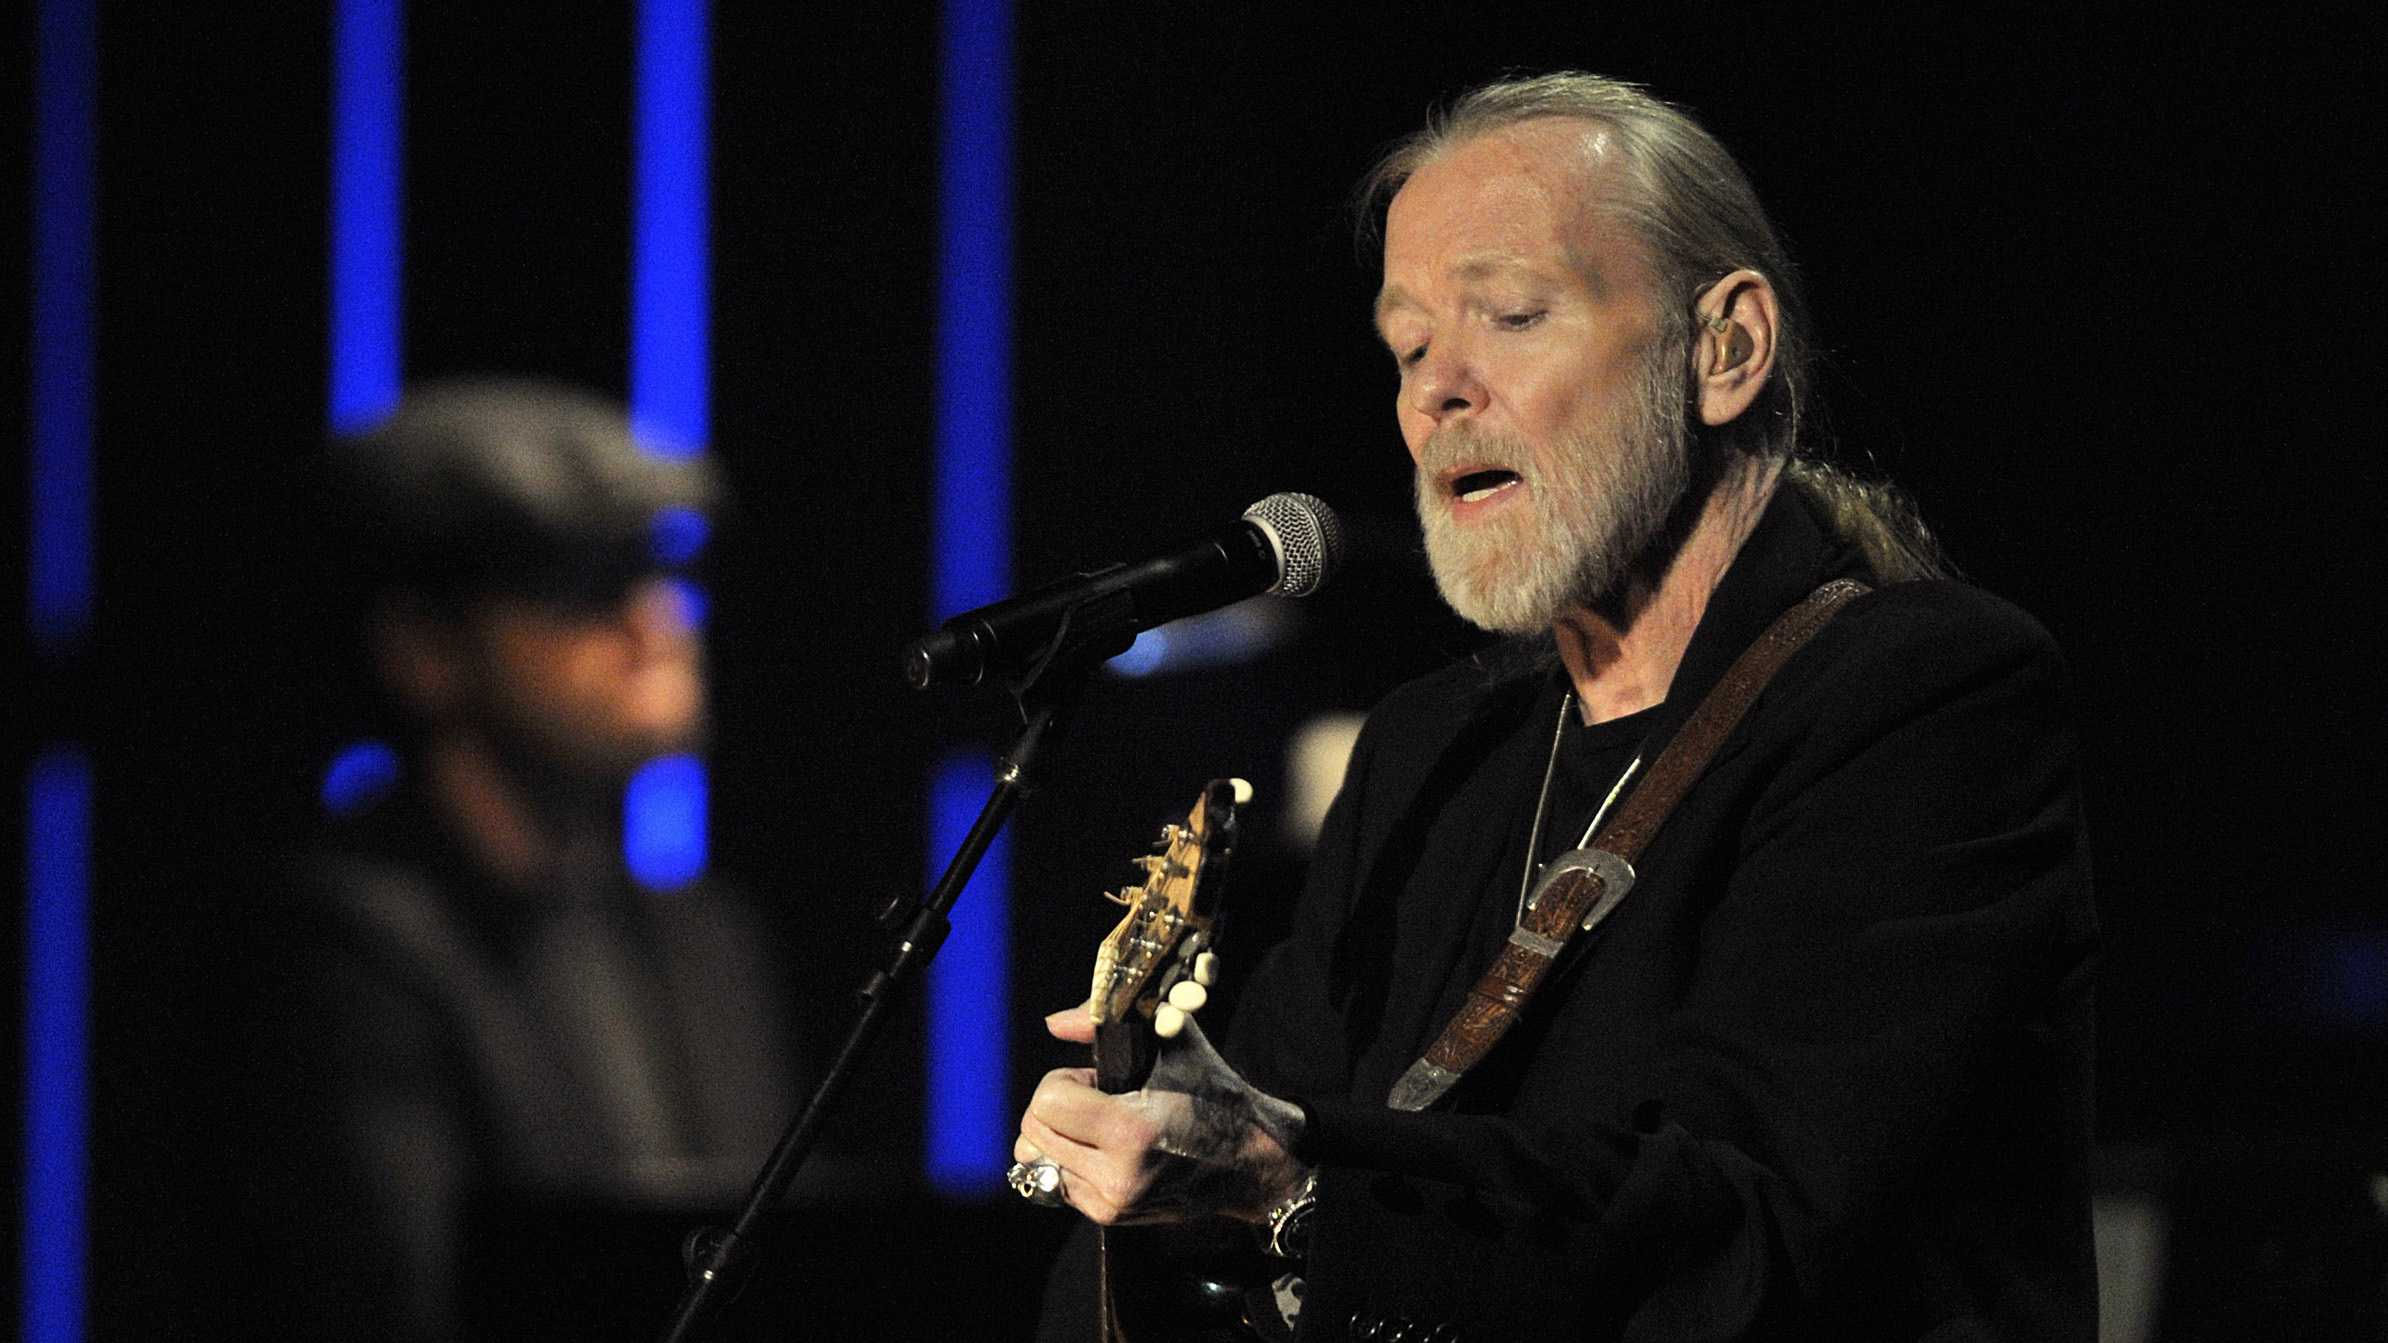 This Oct. 13, 2011, file photo shows Greg Allman performing at the Americana Music Association awards show in Nashville, Tenn.